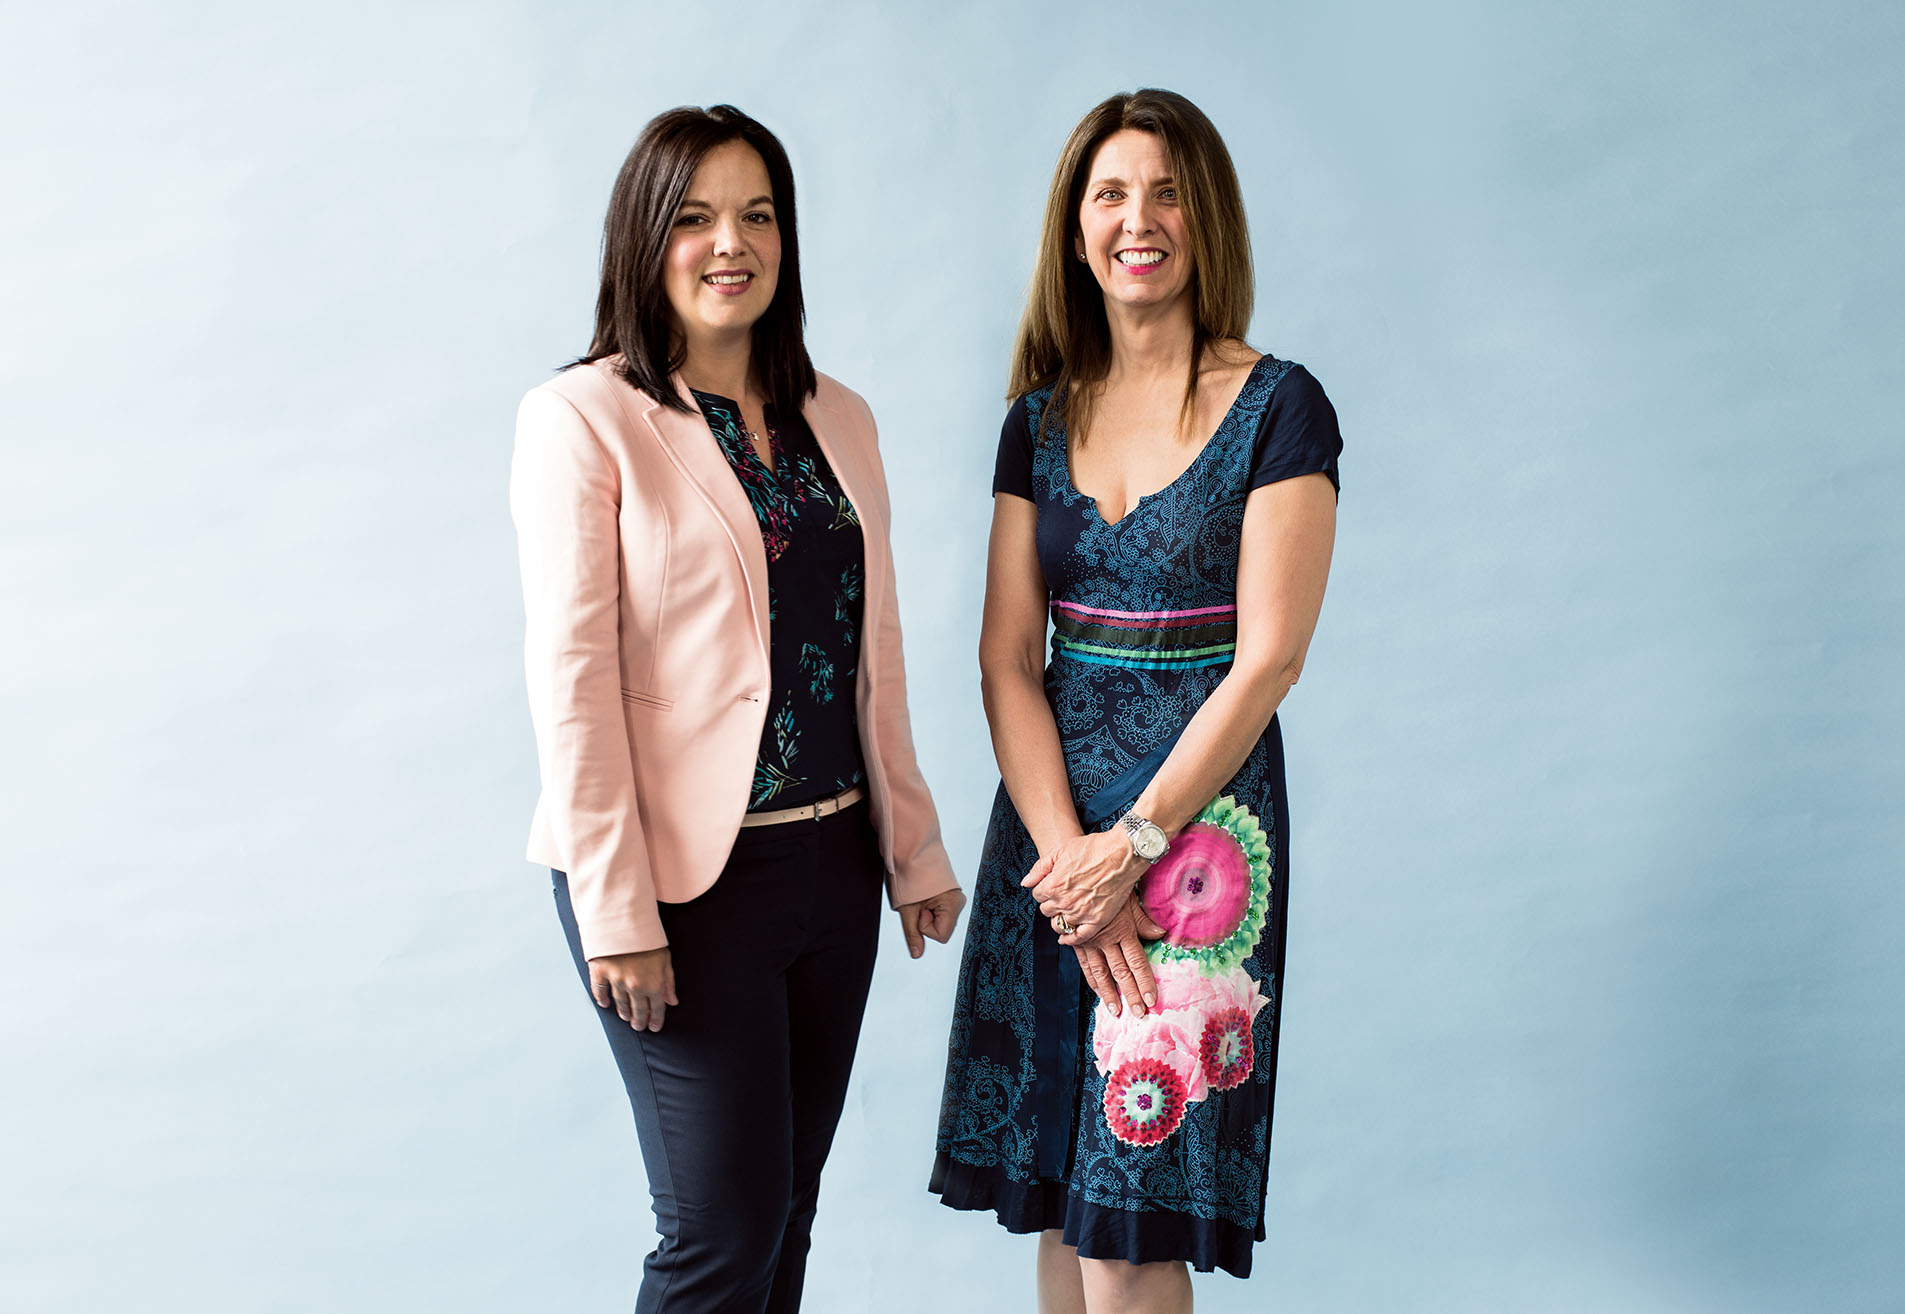 Kimberly Shapkin, left, and Loralee Fox developed and teach the DOME program.Photography by Jared Sych.